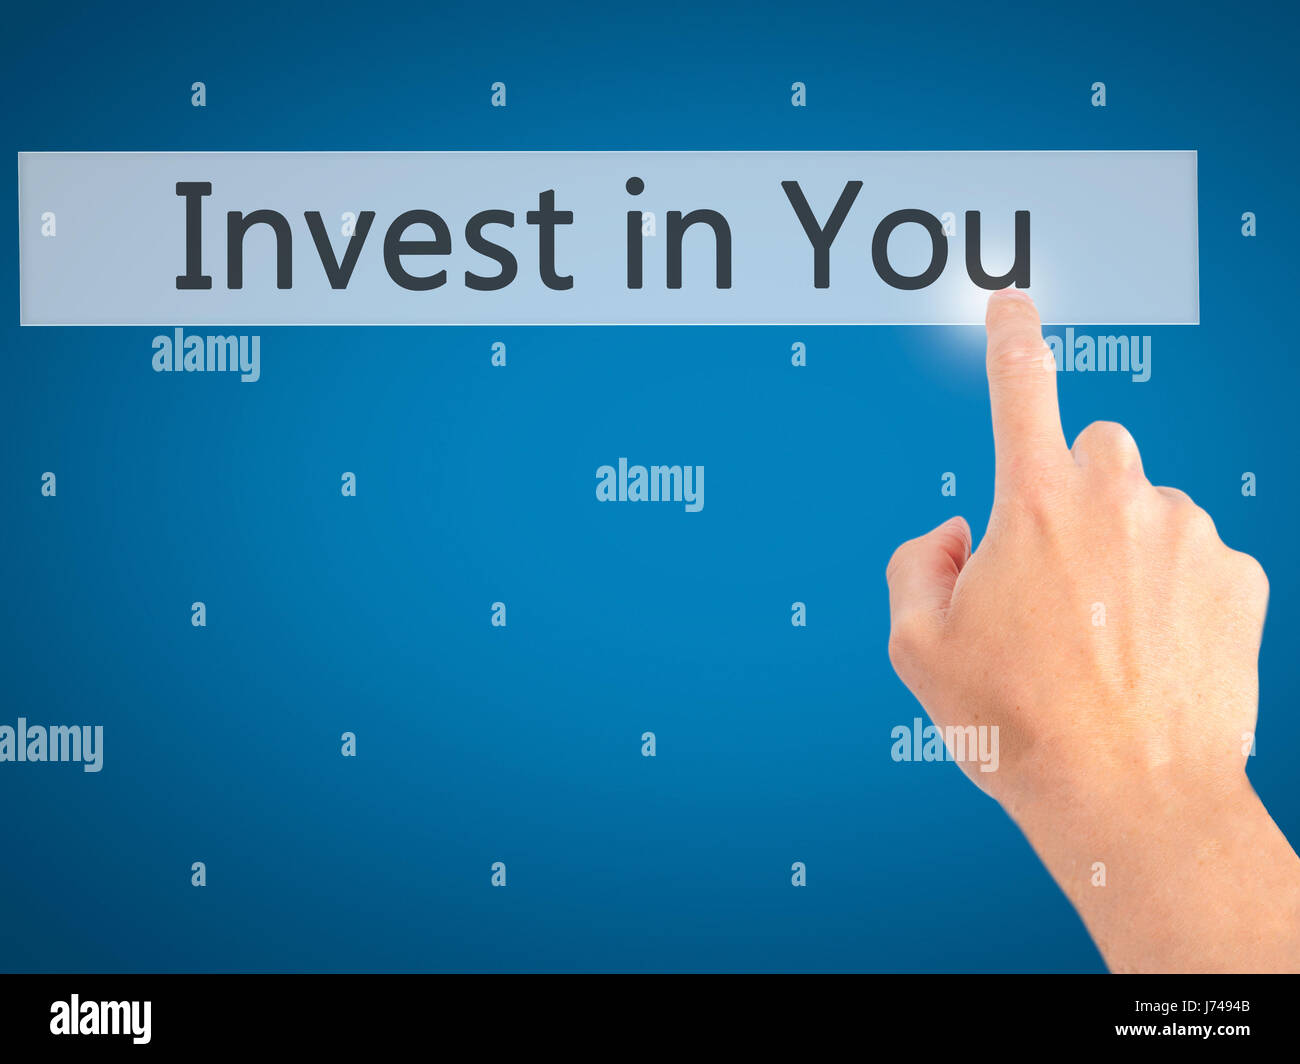 Invest in You - Hand pressing a button on blurred background concept . Business, technology, internet concept. Stock Stock Photo